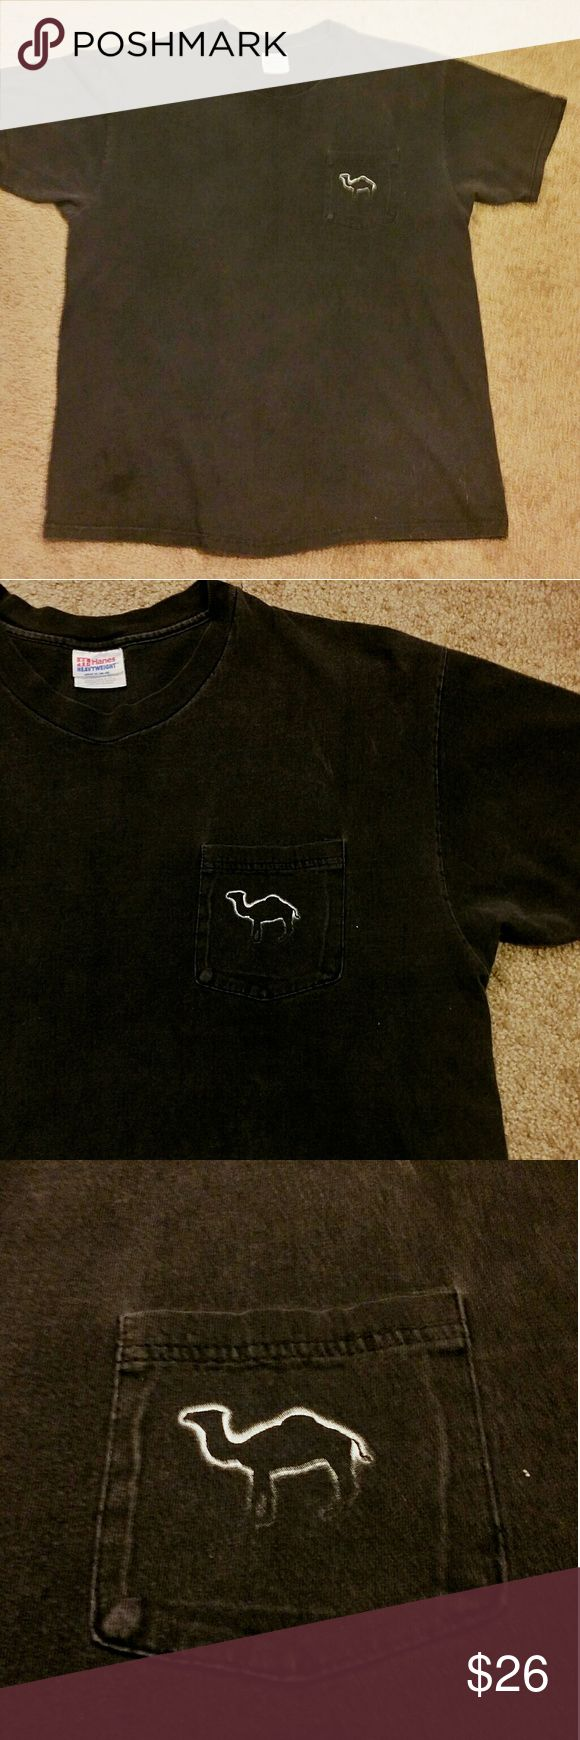 Vintage Men's Joe Camel Black Pocket Tee Description: Vintage Joe Camel Tee Shirt. Eclipse Version. Front small rightside pocket with Joe and reverse graphics featuring an eclipse over Joe the Camel.   This is a worn vintage item that was naturally distressed. Now has a tiny bleach dot on the back shoulder, as seen in photos, and a small stain that hardly noticable in front towards bottom left. Still less of life left~  Size: Adult XL Vintage Shirts Tees - Short Sleeve